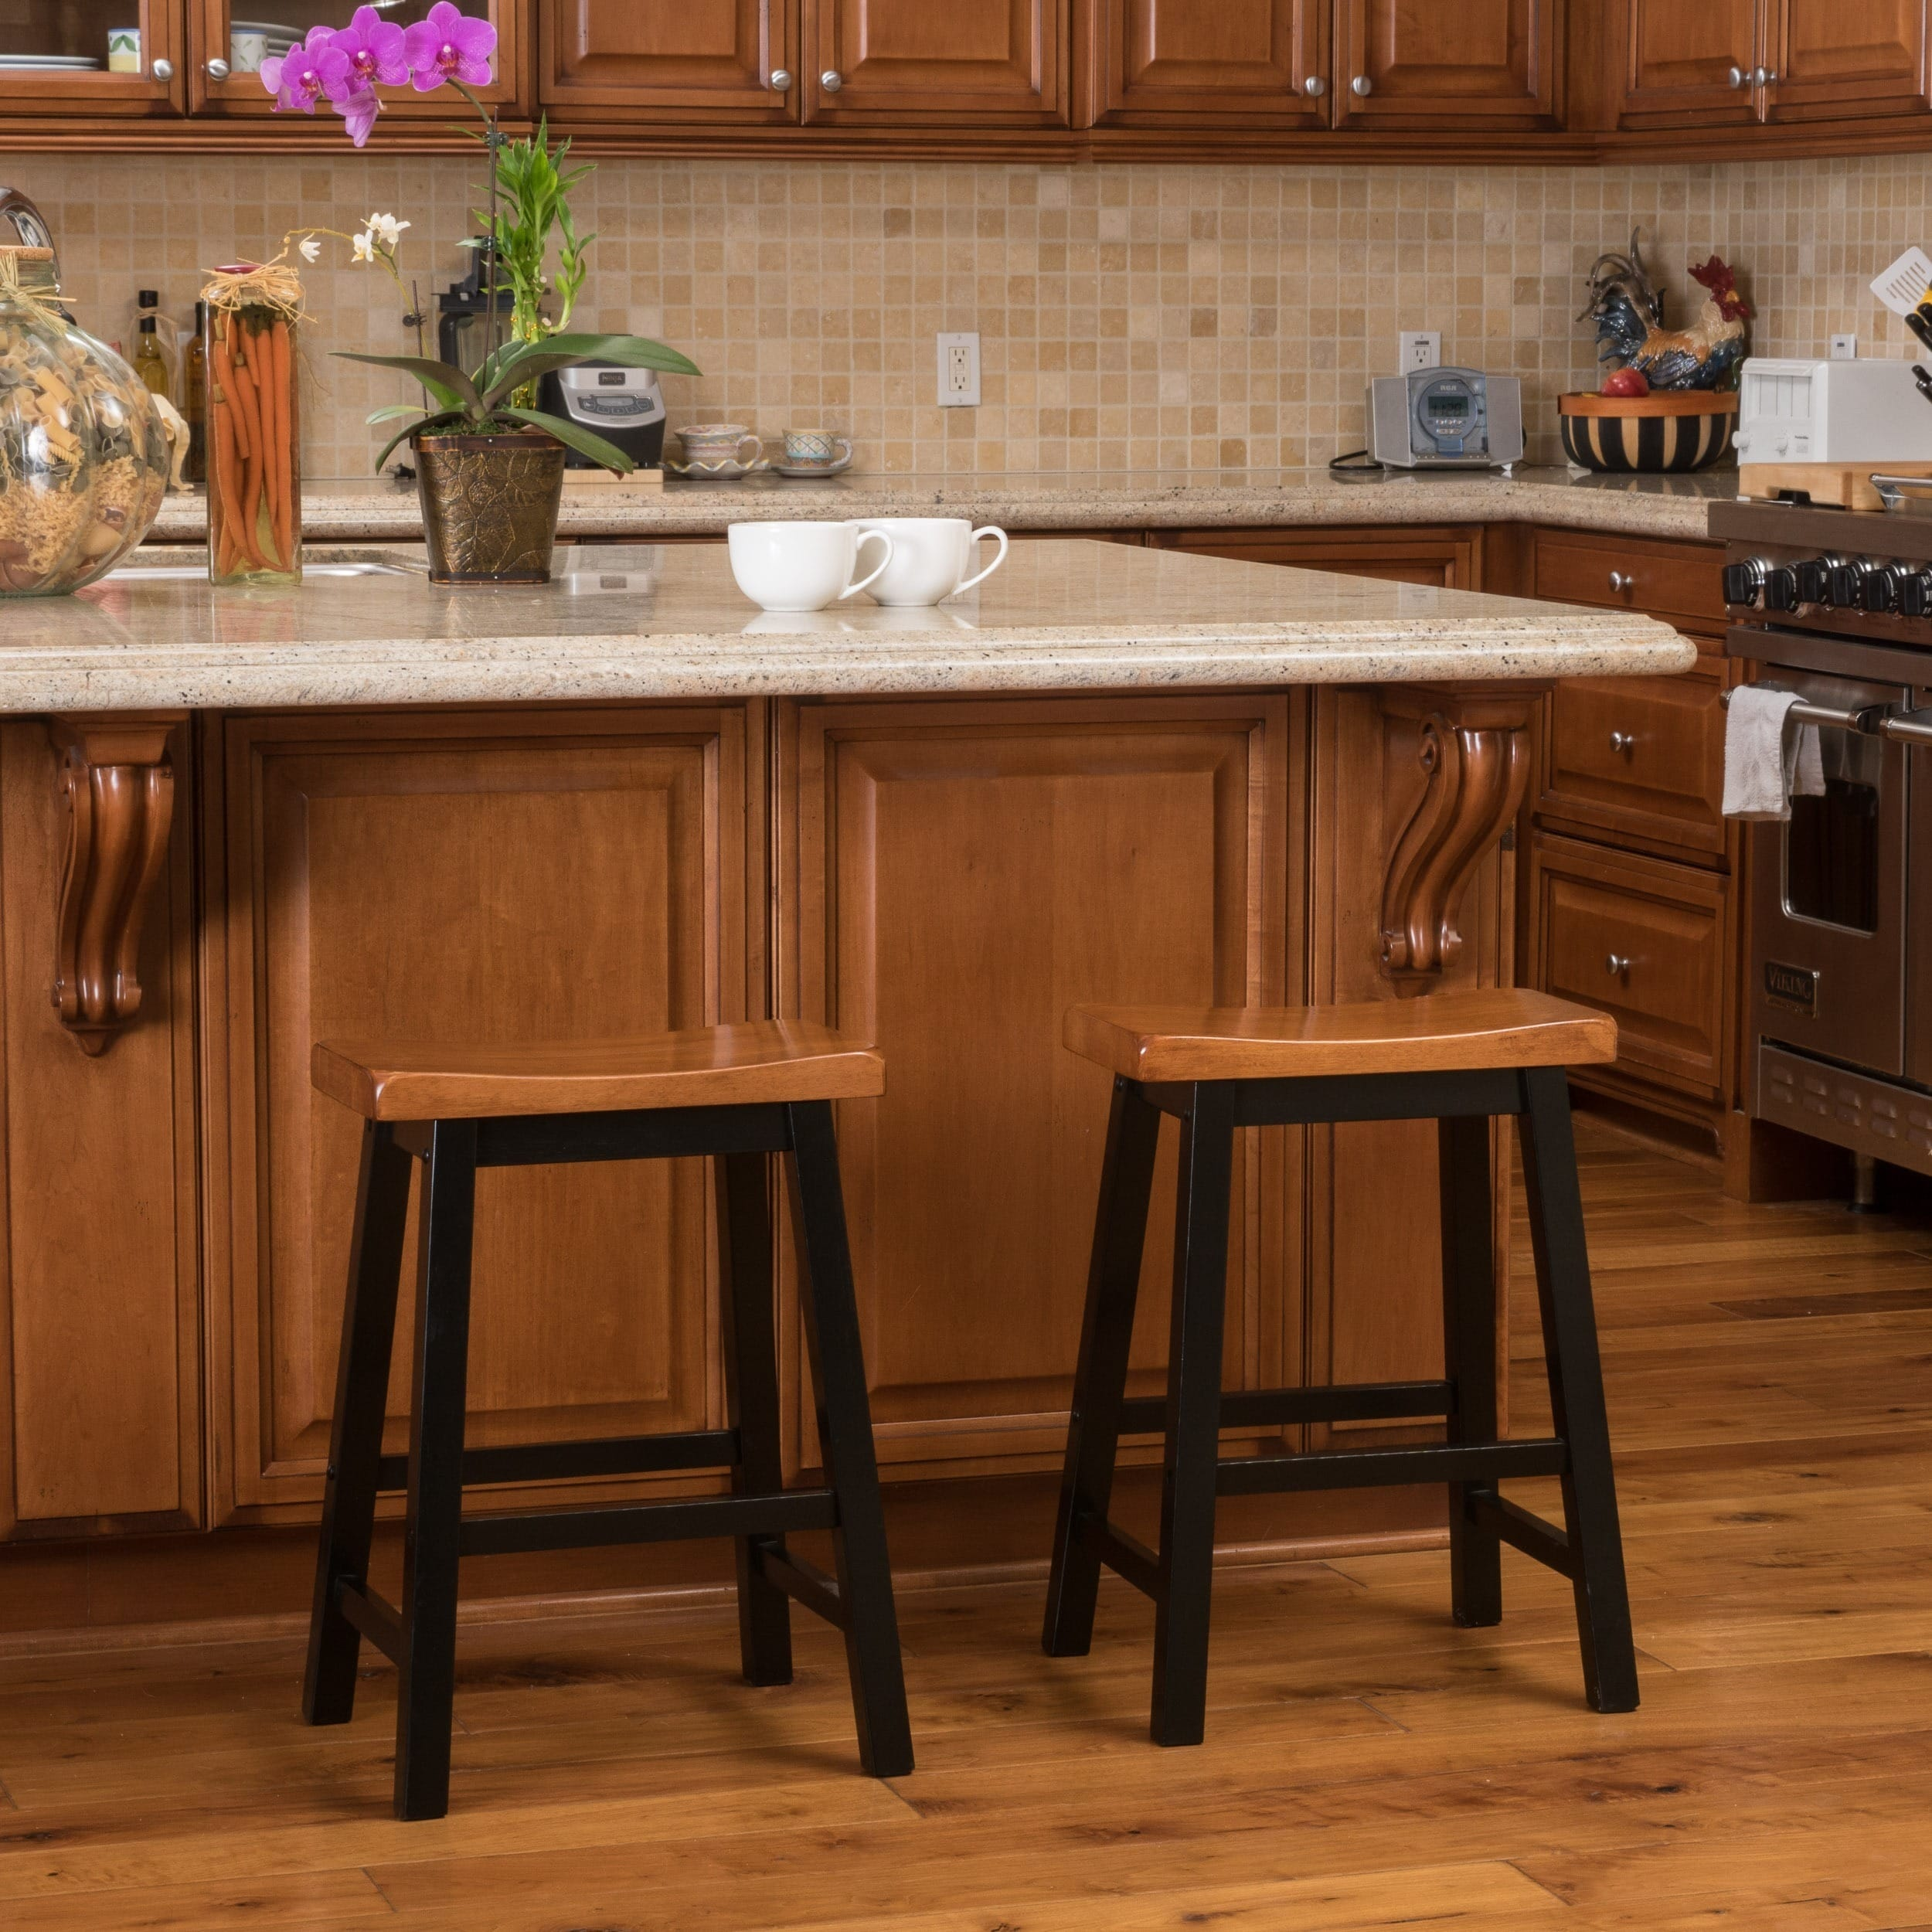 cabinets islands range stools countertop hood photos counter kitchen